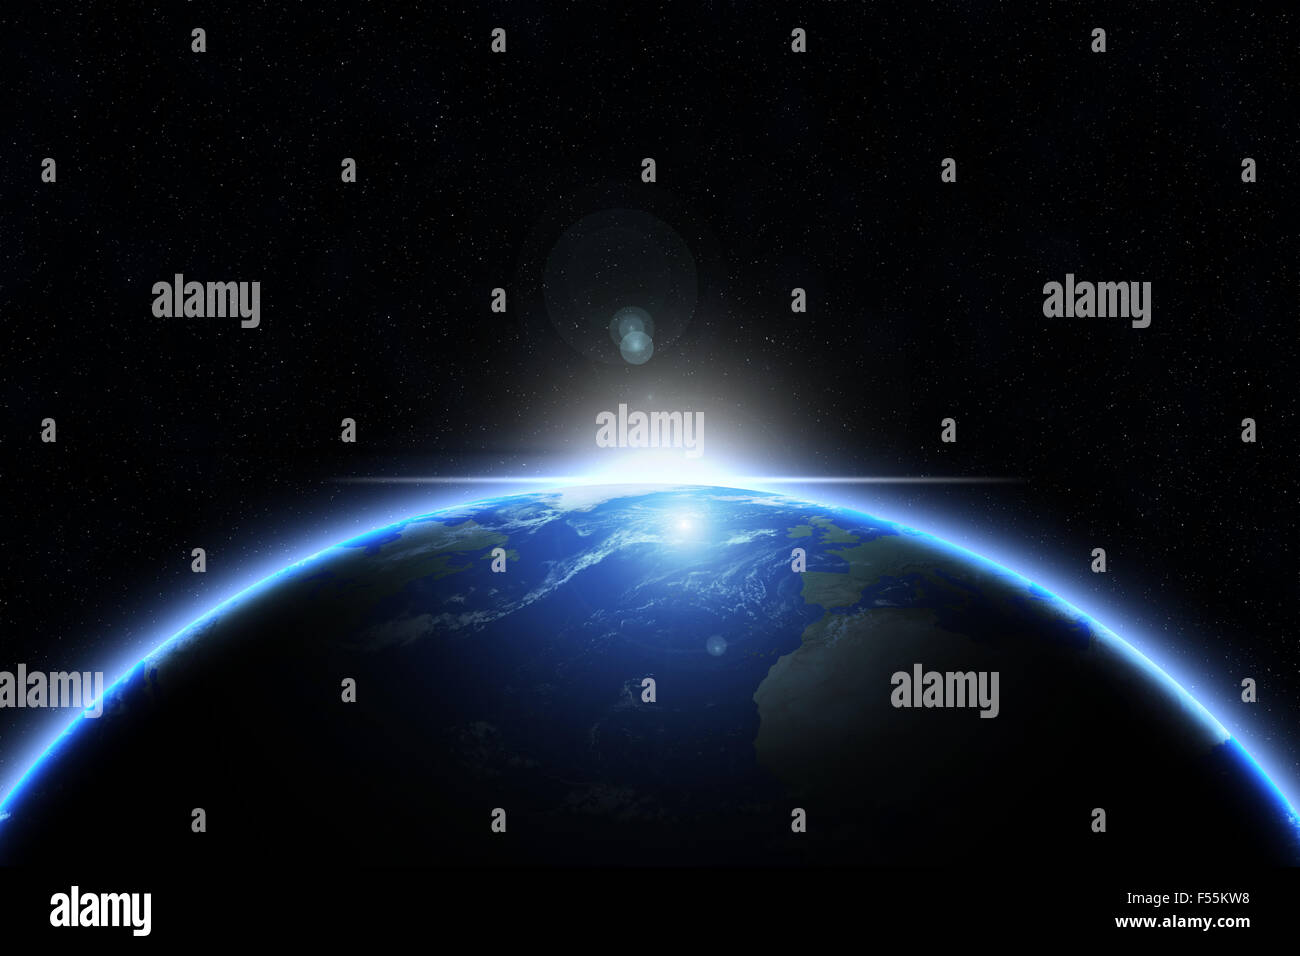 Planet earth with sunrise in space - elements of this image furnished by NASA - Stock Image